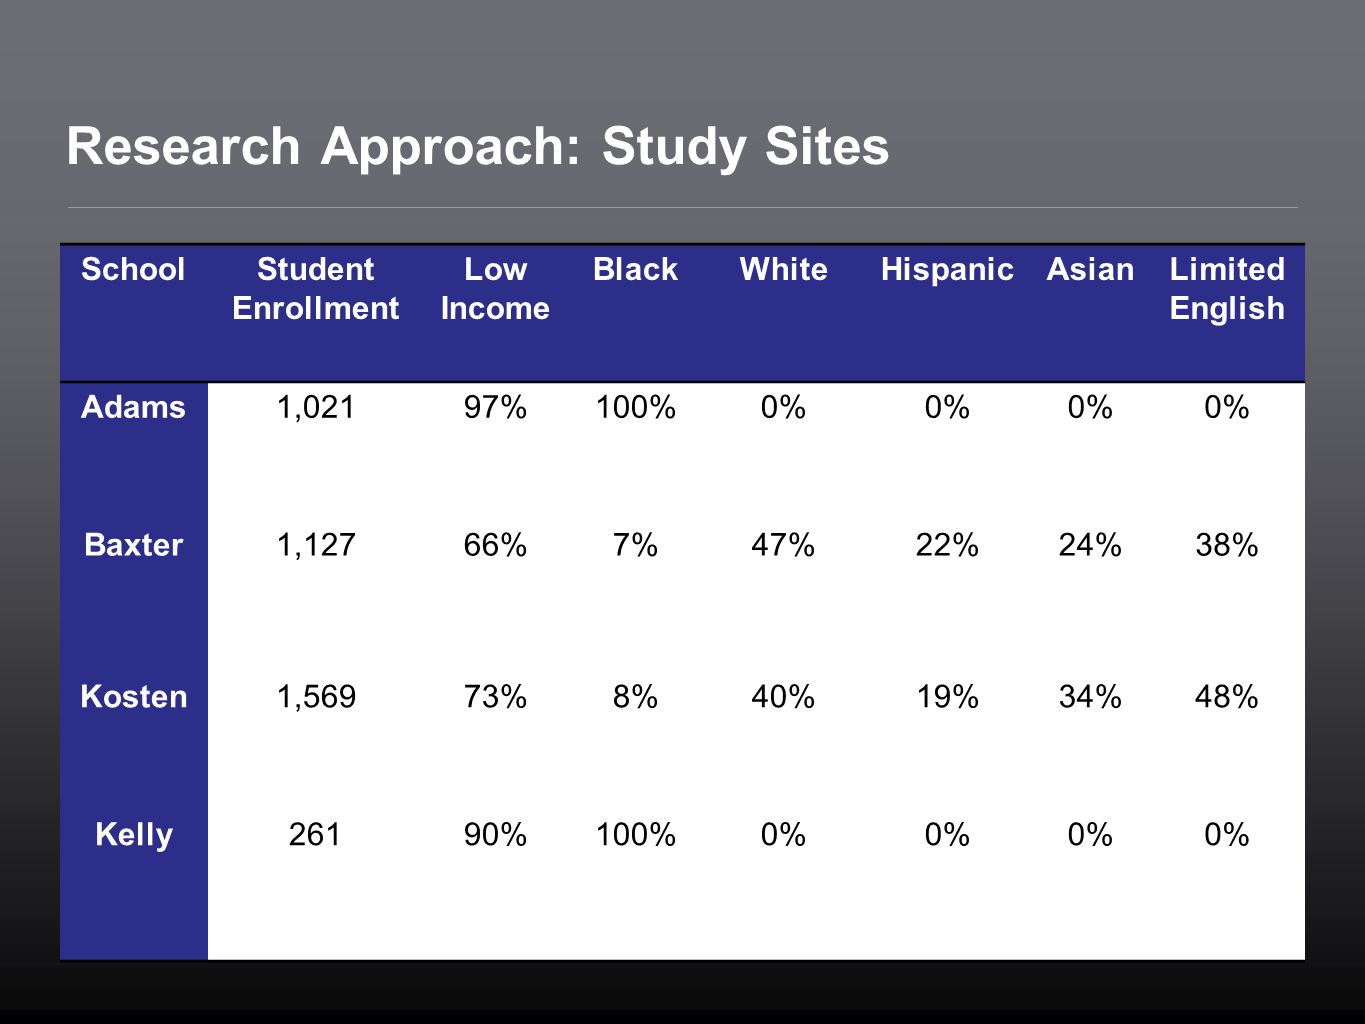 Research Approach: Study Sites